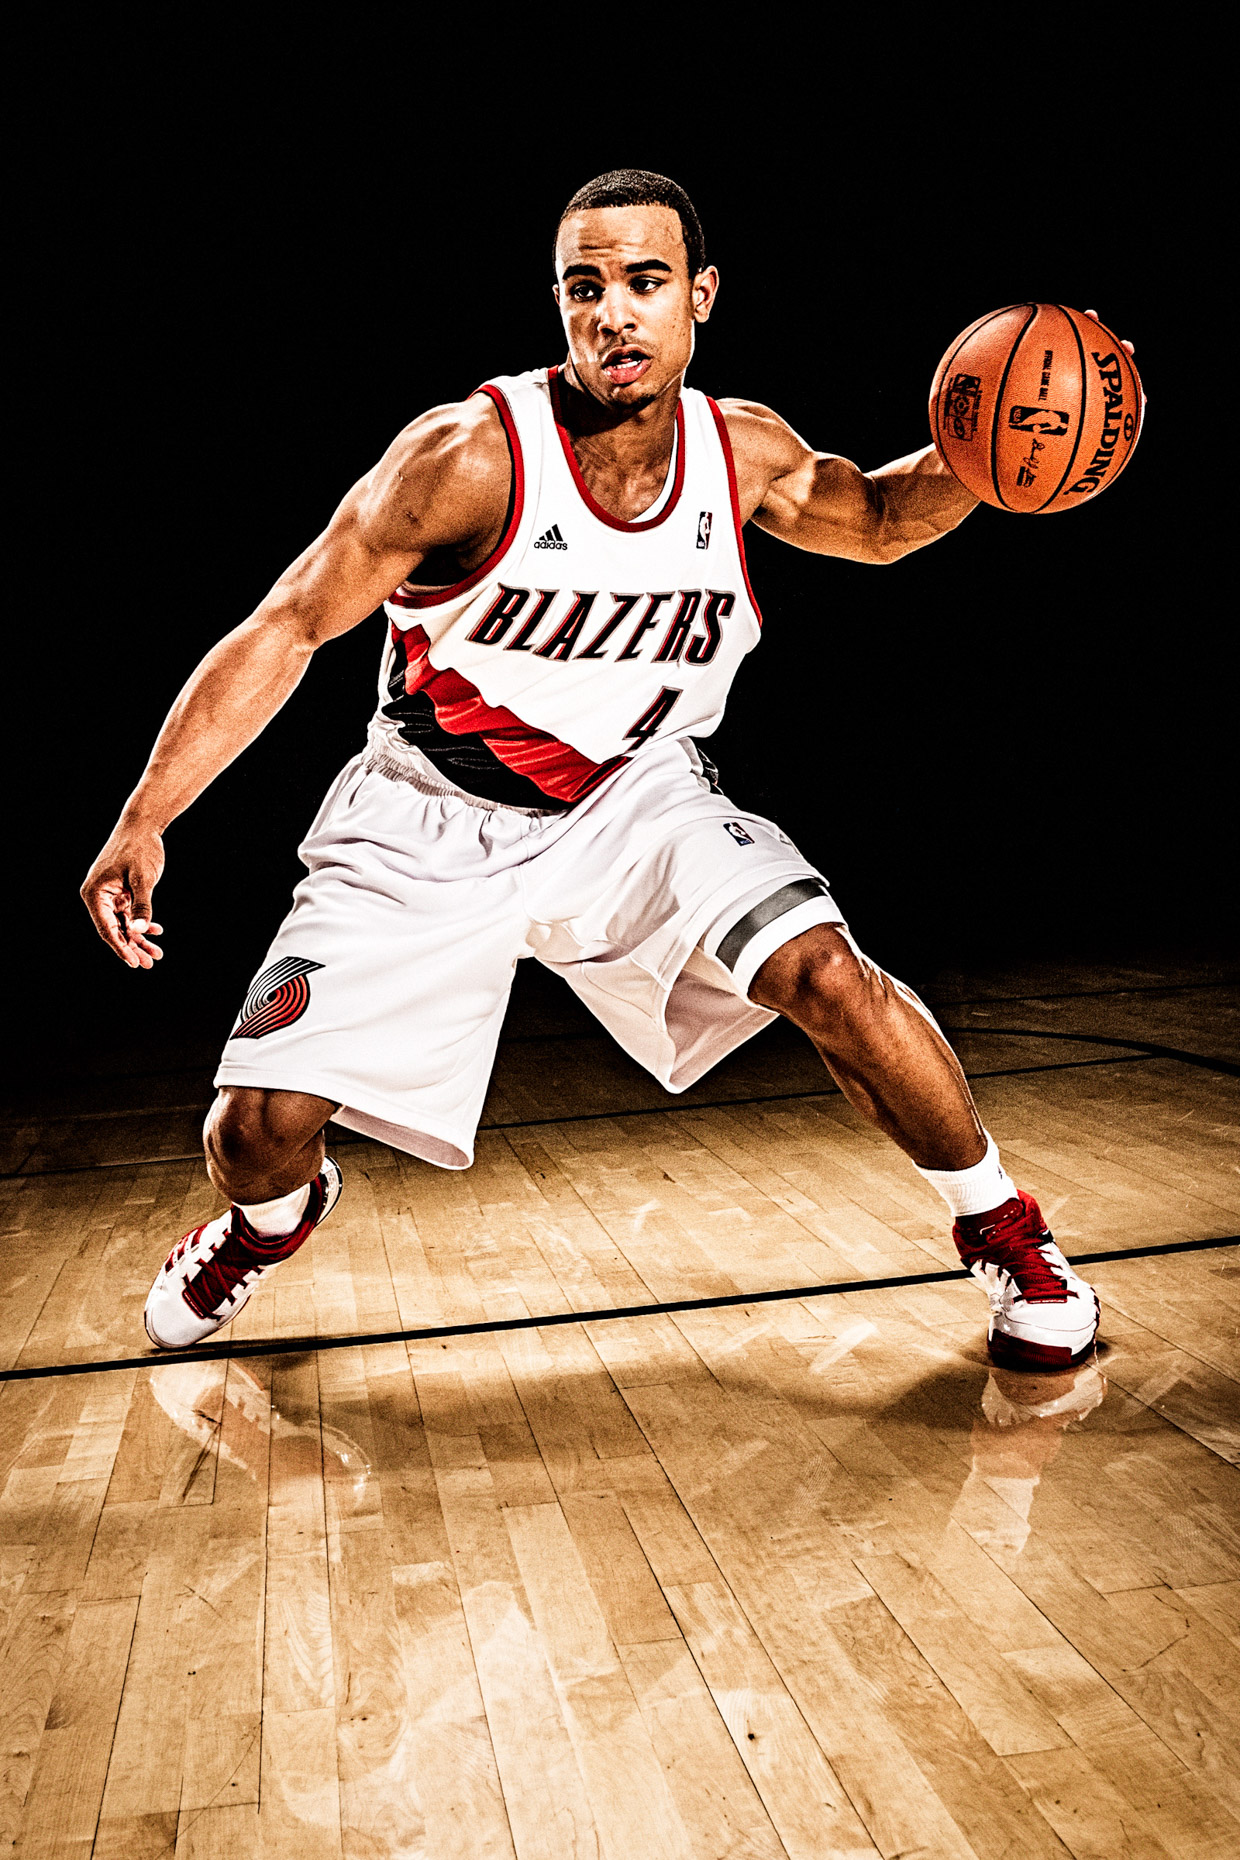 NBA basketball player Jerryd Bayless, photographed by dramatic sport photographer Andy Batt.